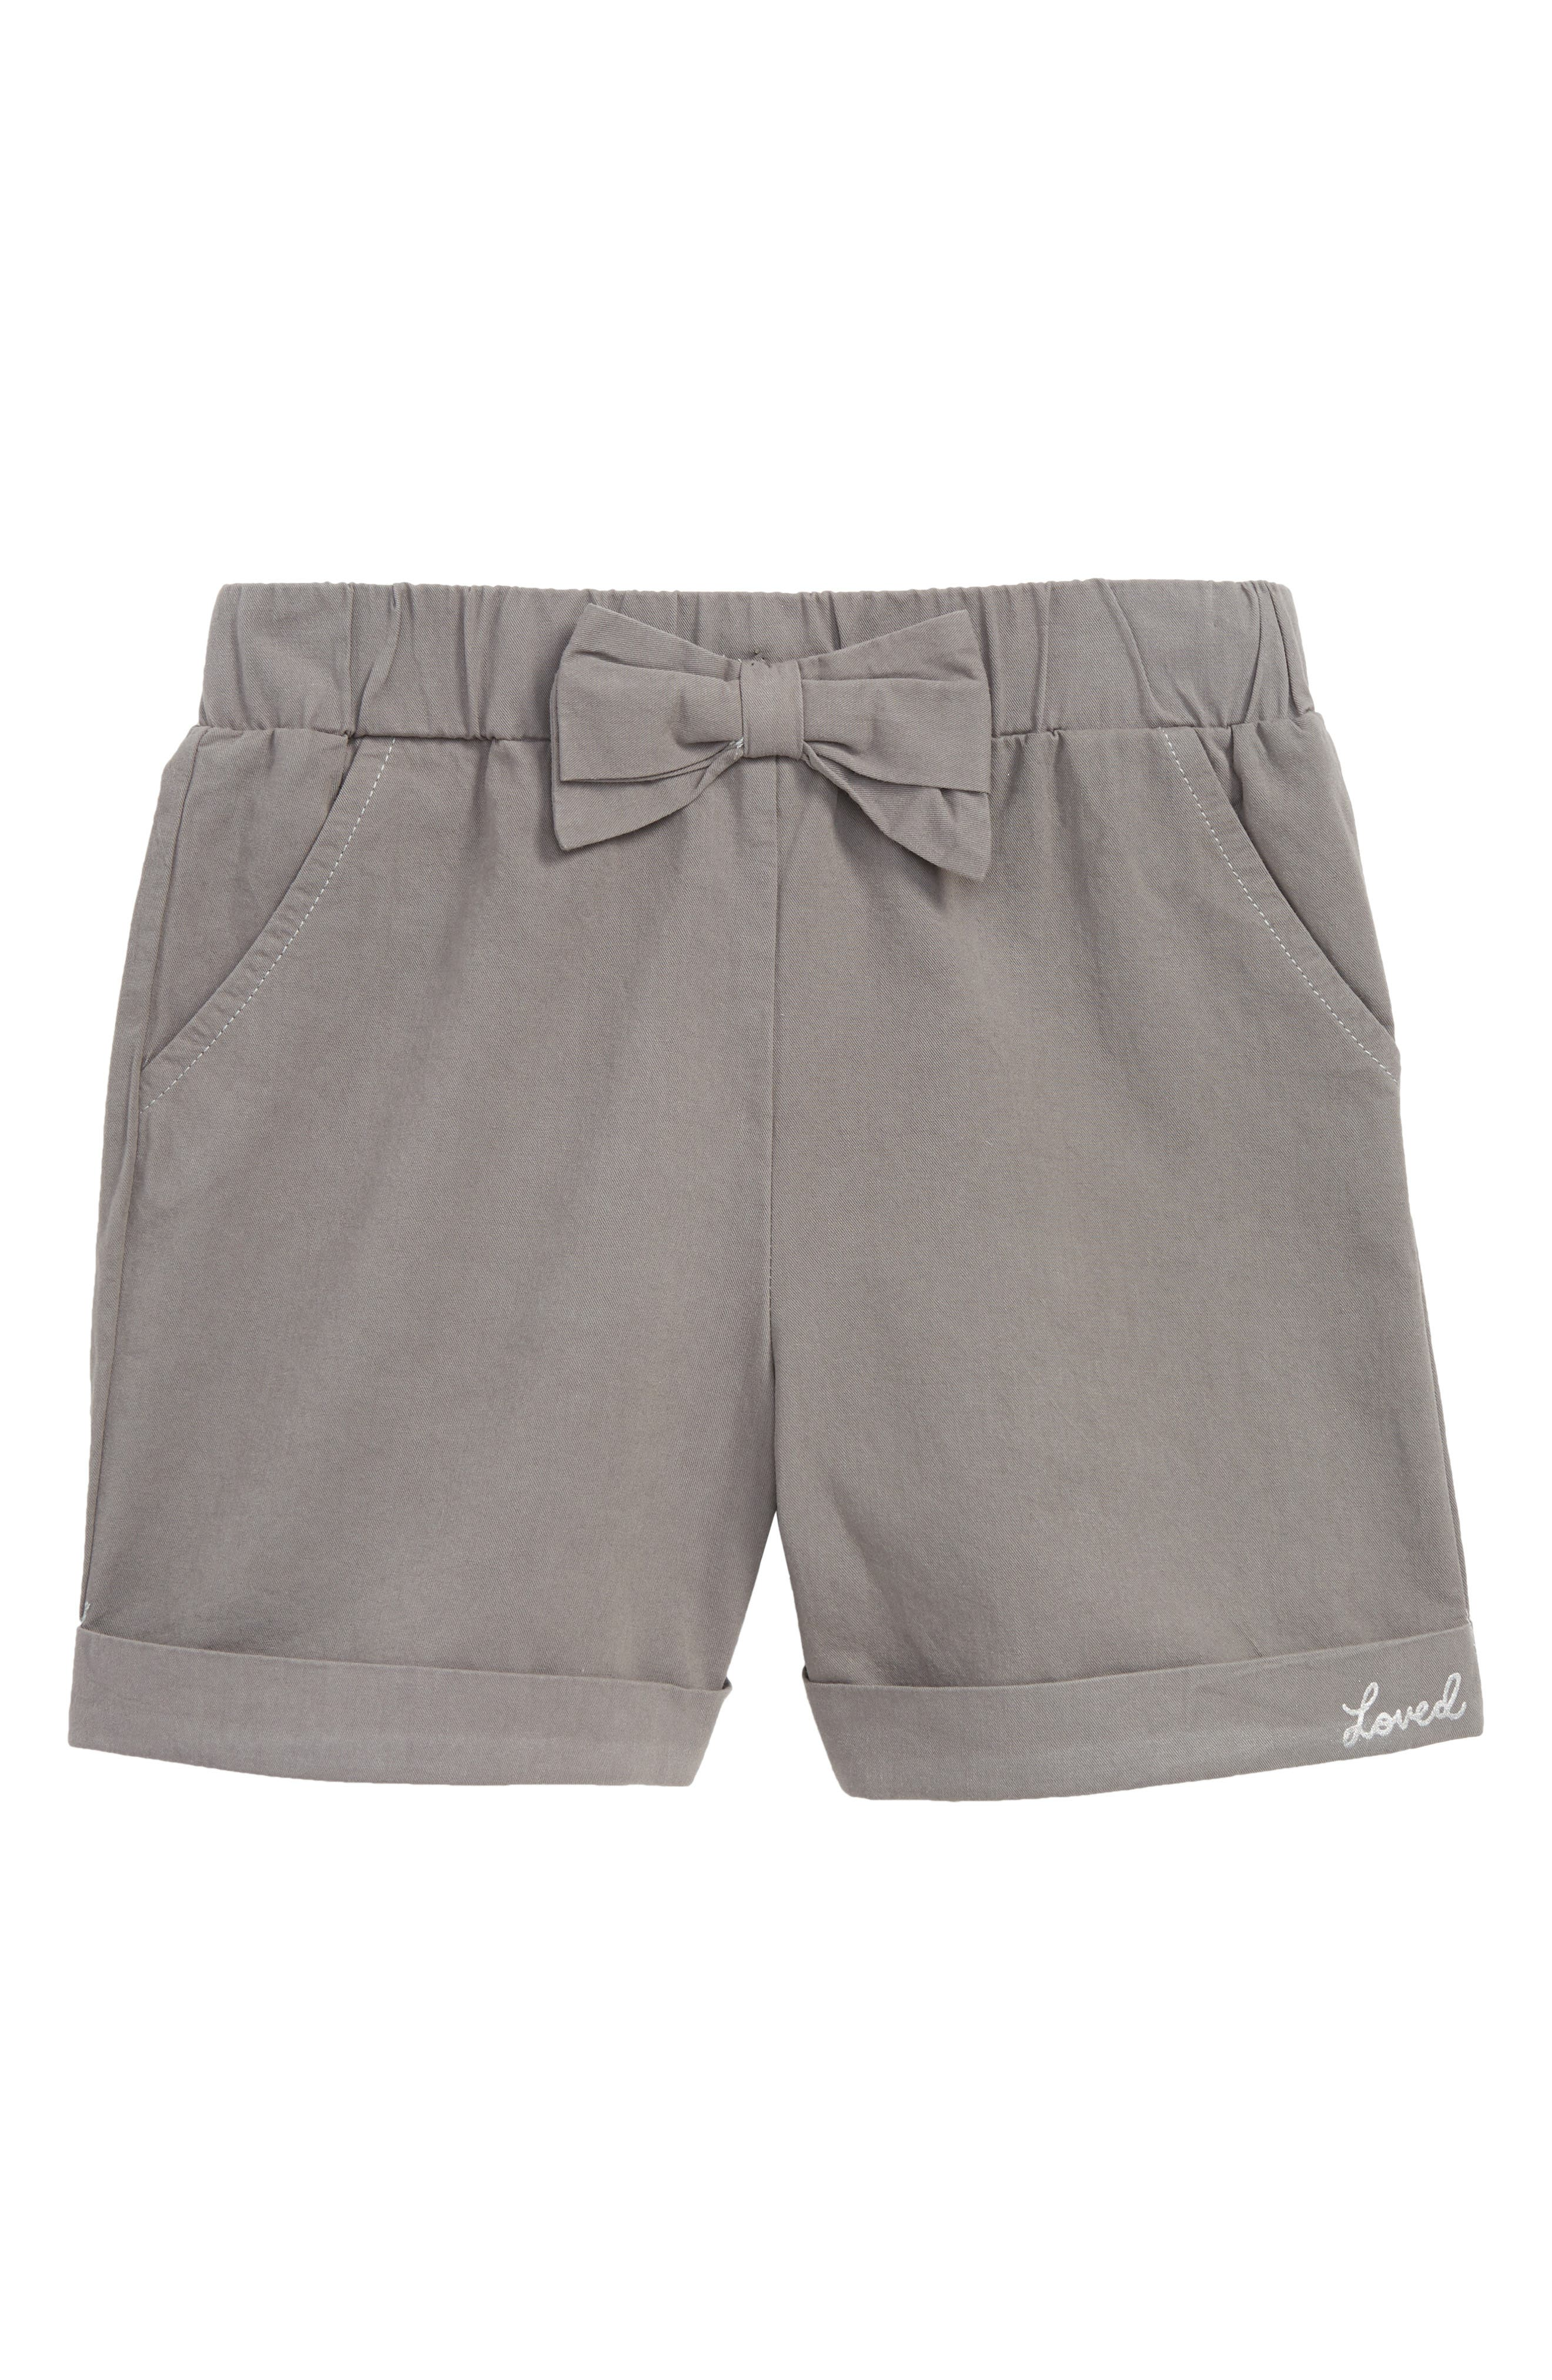 Cuffed Shorts,                         Main,                         color, 021